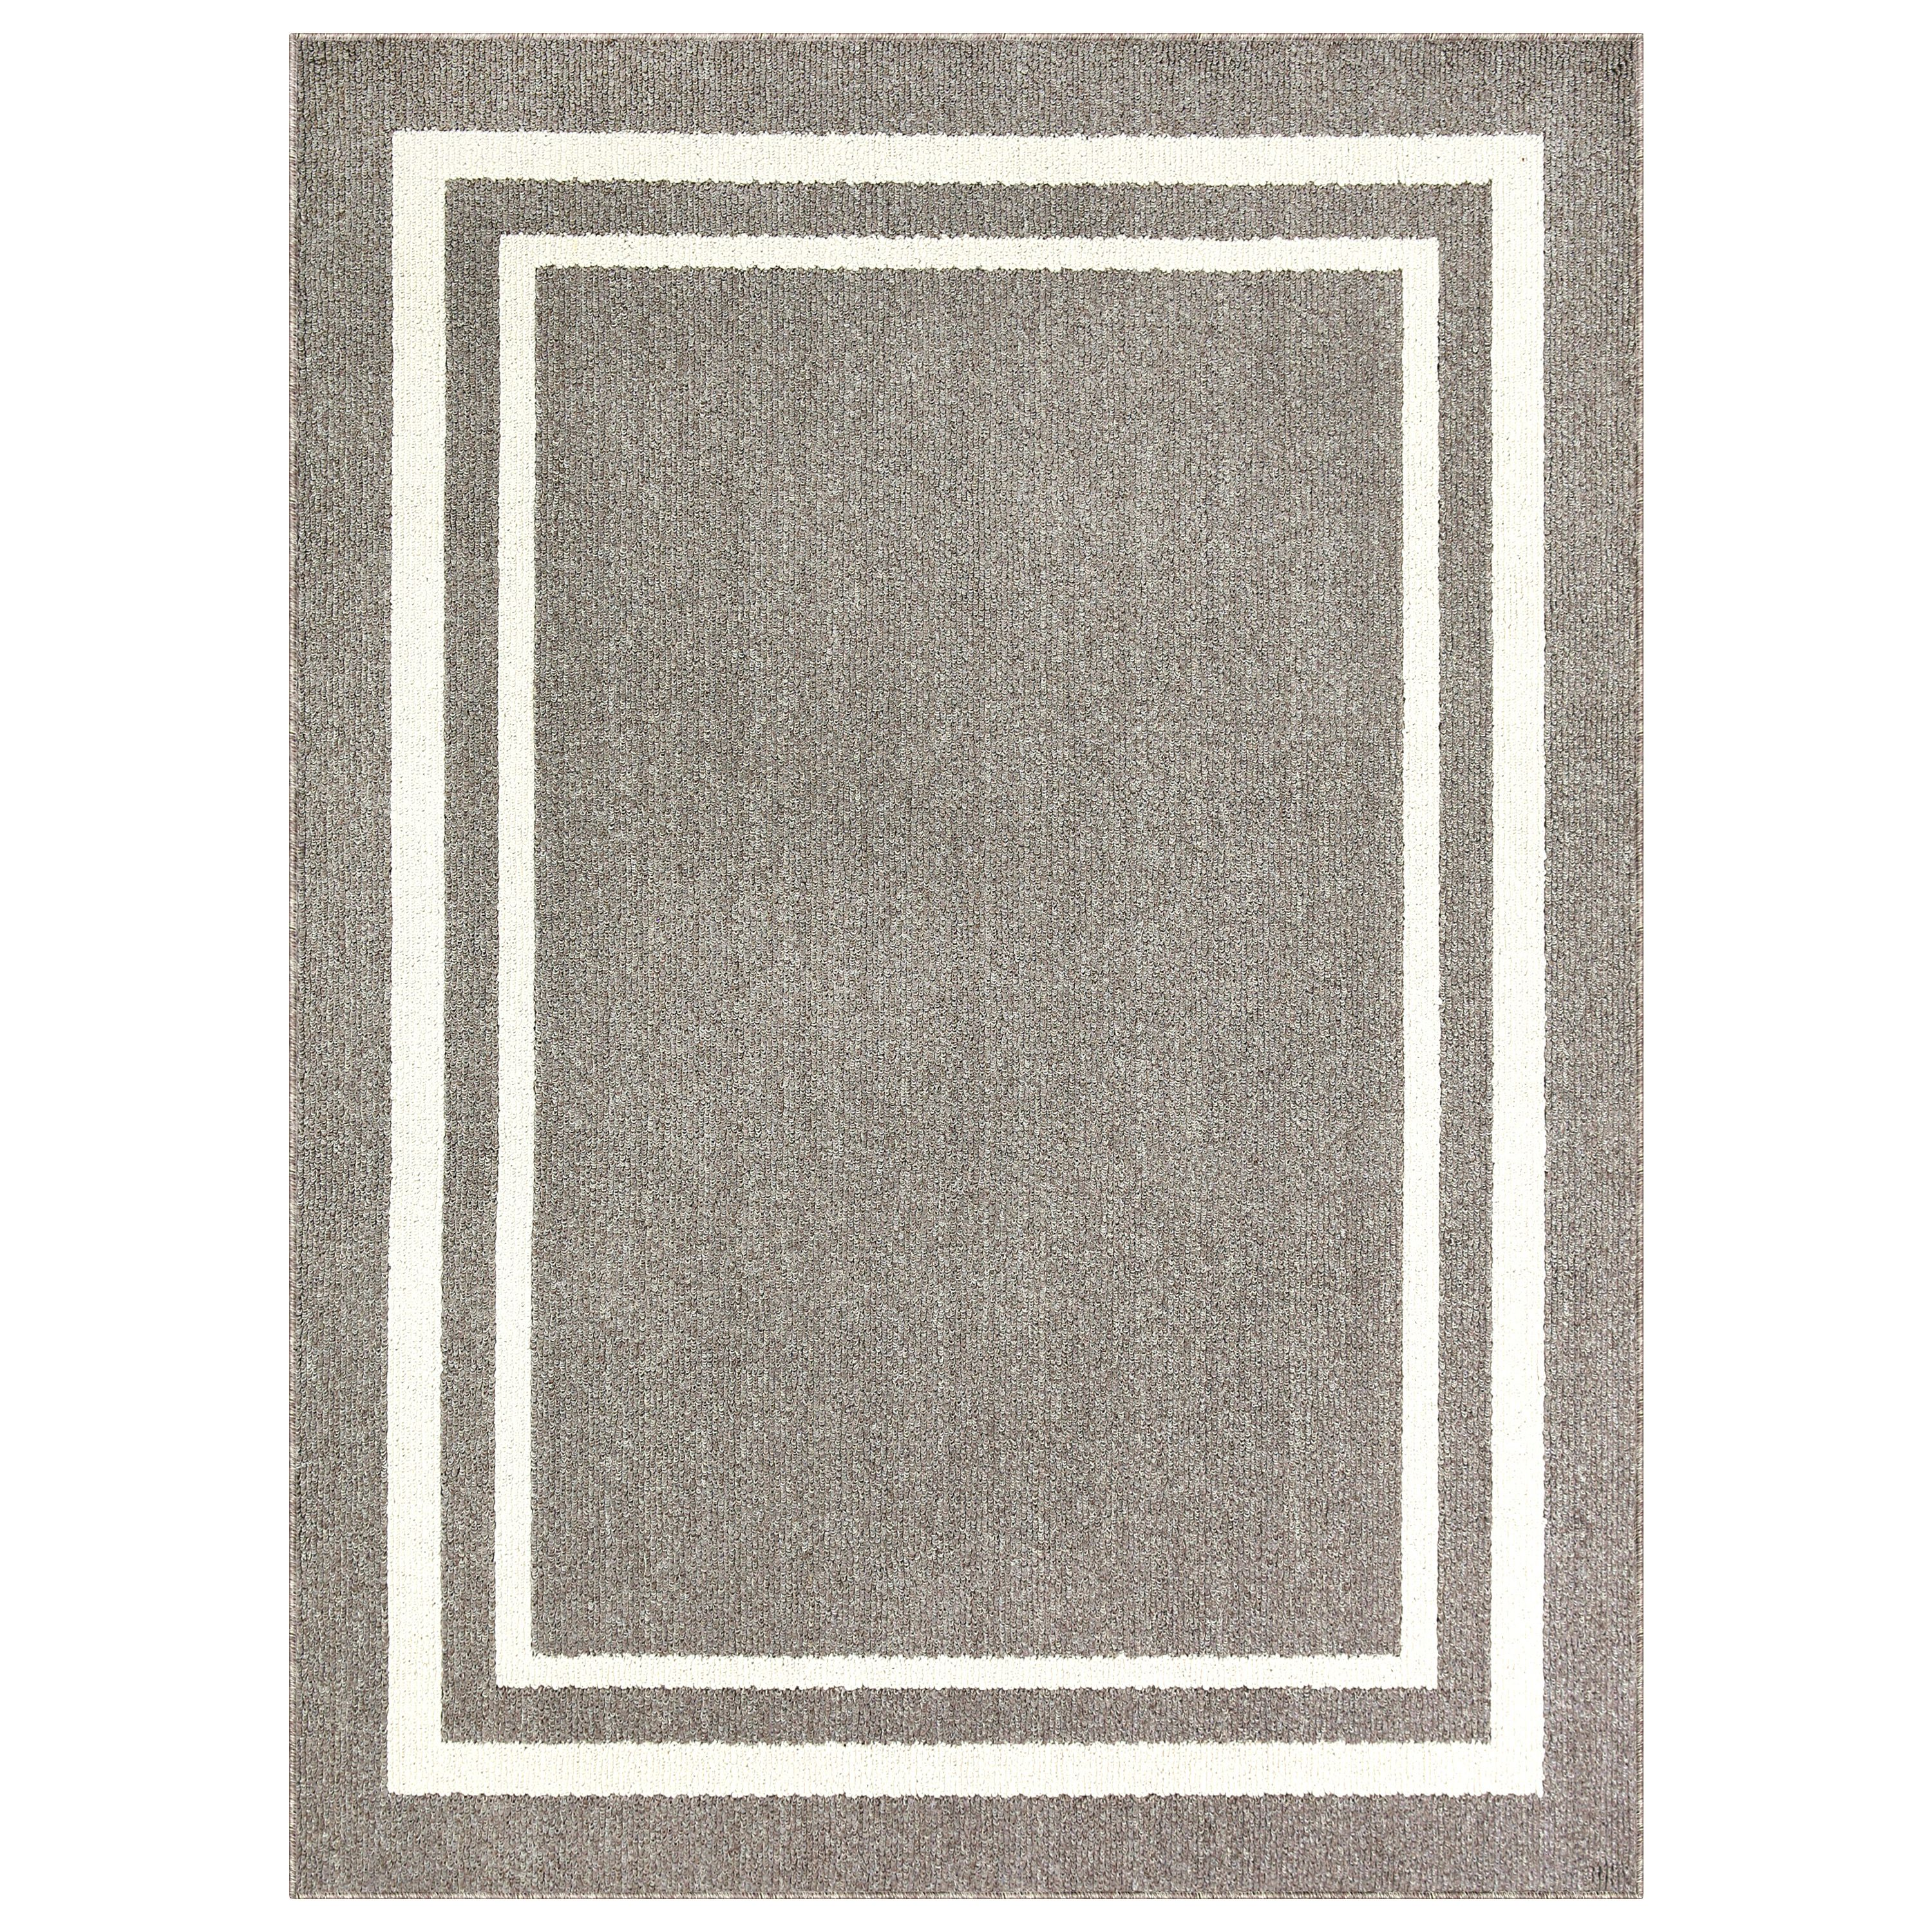 Mainstays Frame Border Area Rugs Or Runner Multiple Sizes